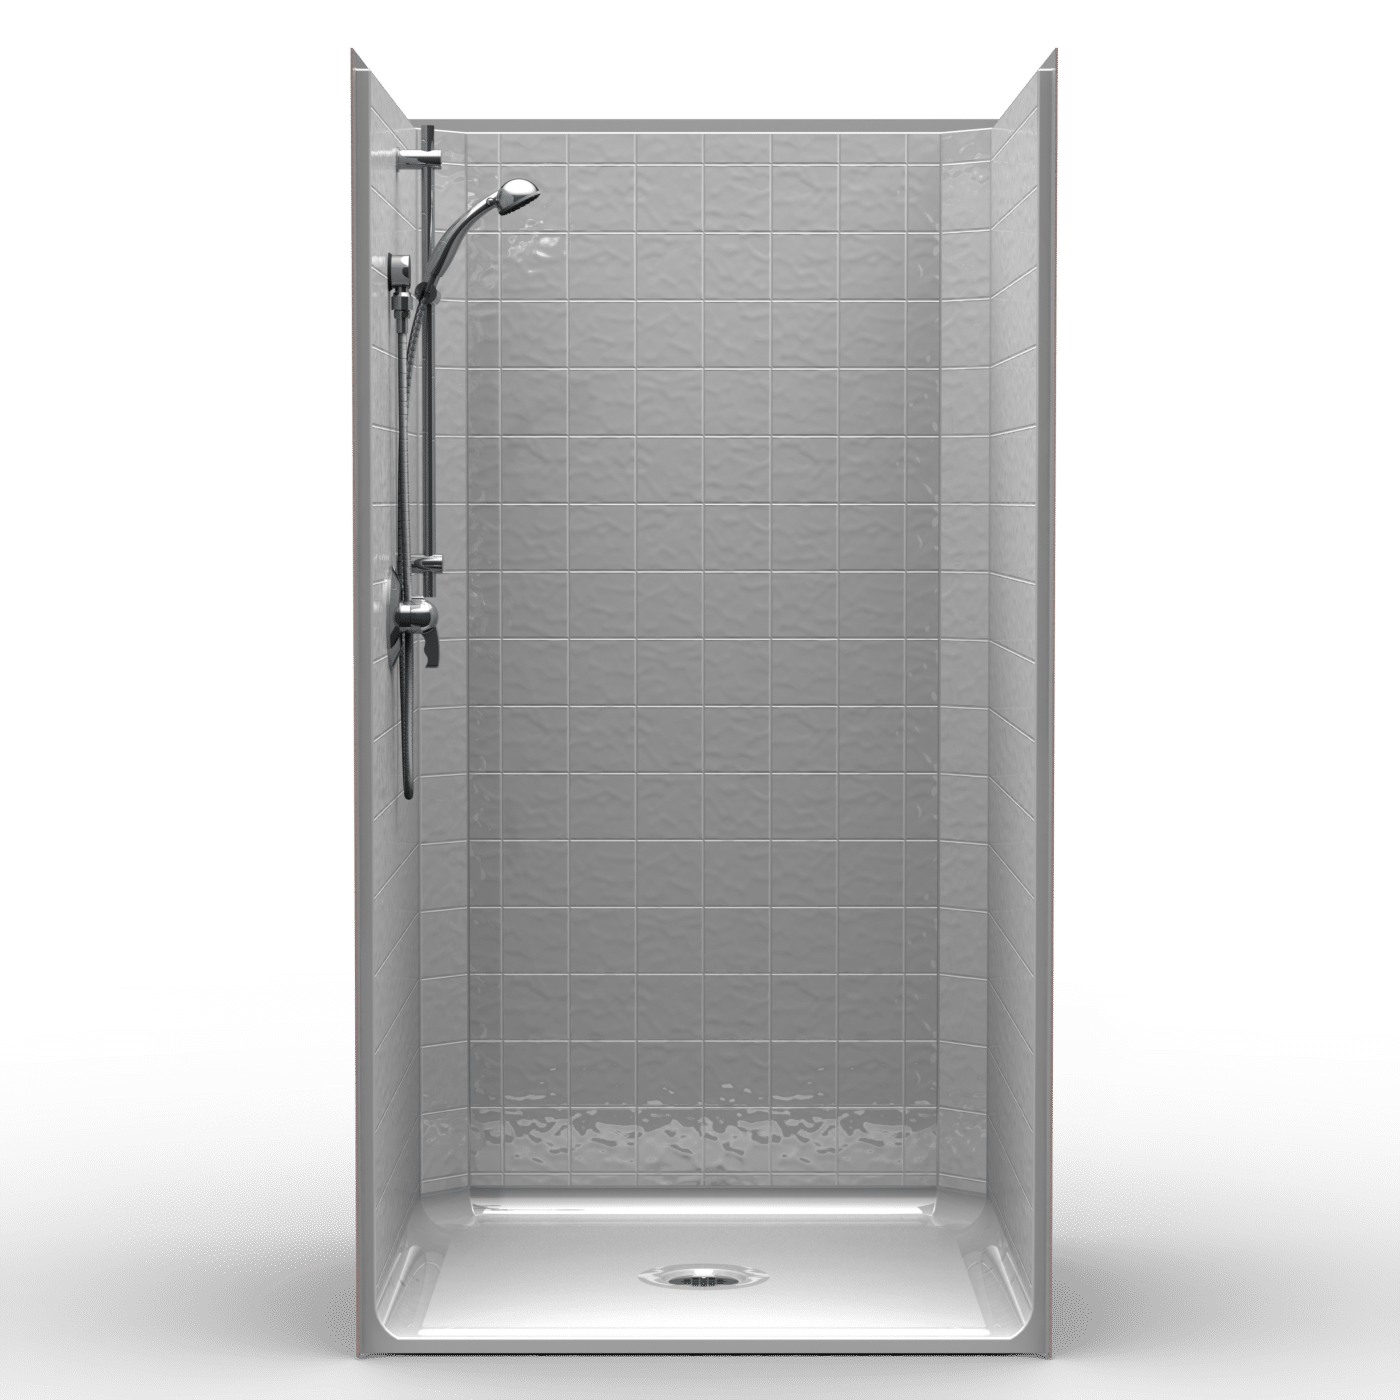 Maximize Your Space with Our New 30 inch X 30 inch Shower Stall ...